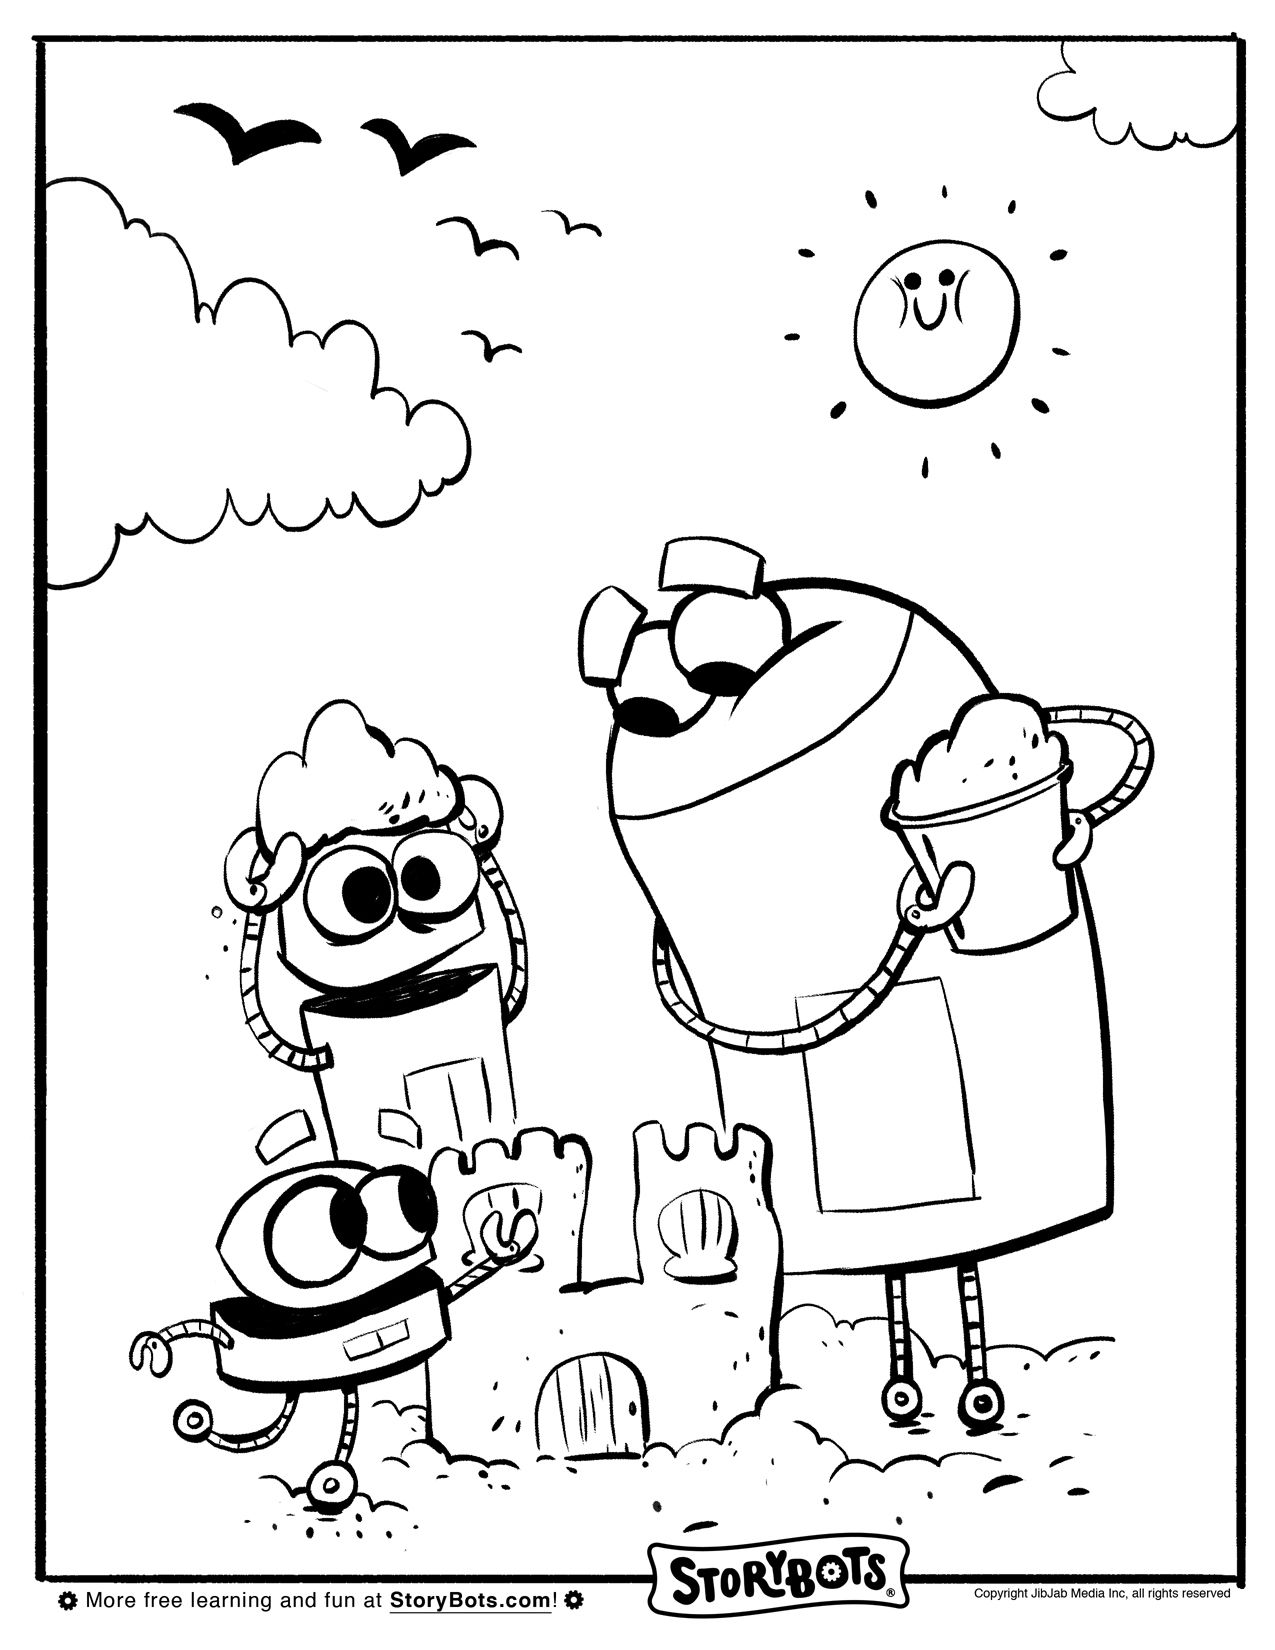 StoryBots Sandcastle Coloring Sheet | Summer Activity Sheets ...